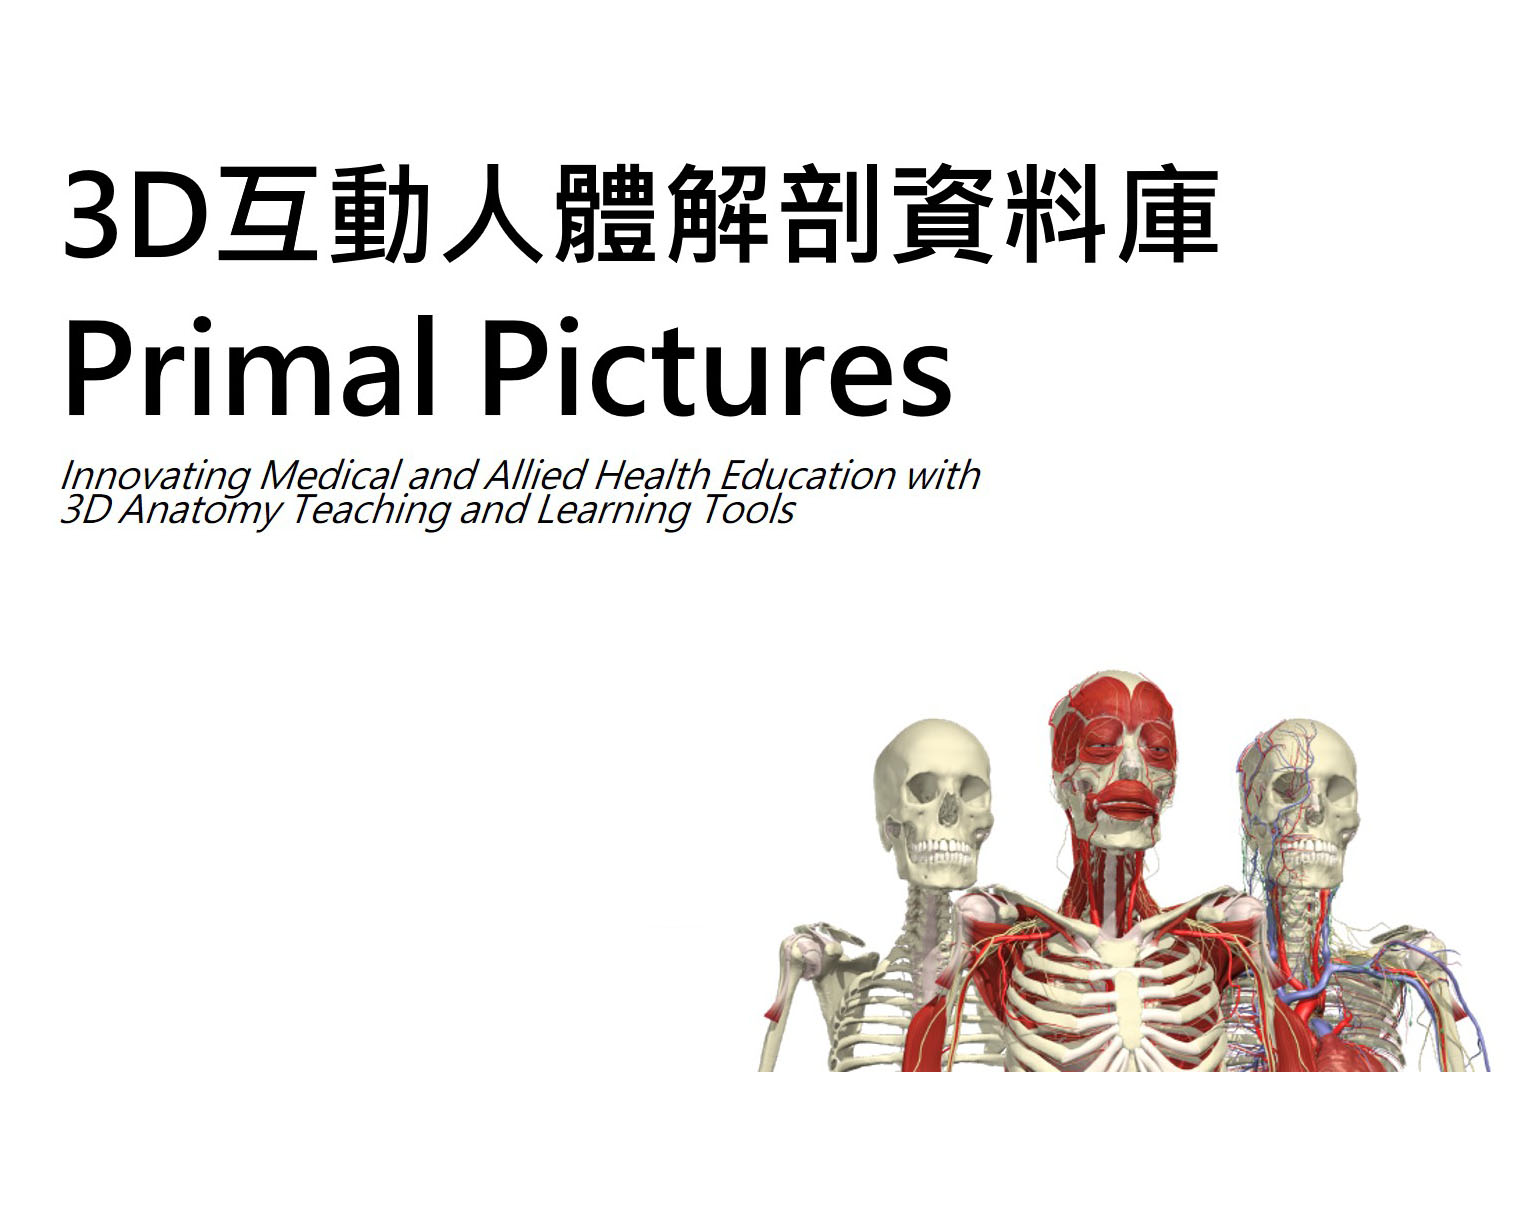 Primal Pictures 3D Real-time